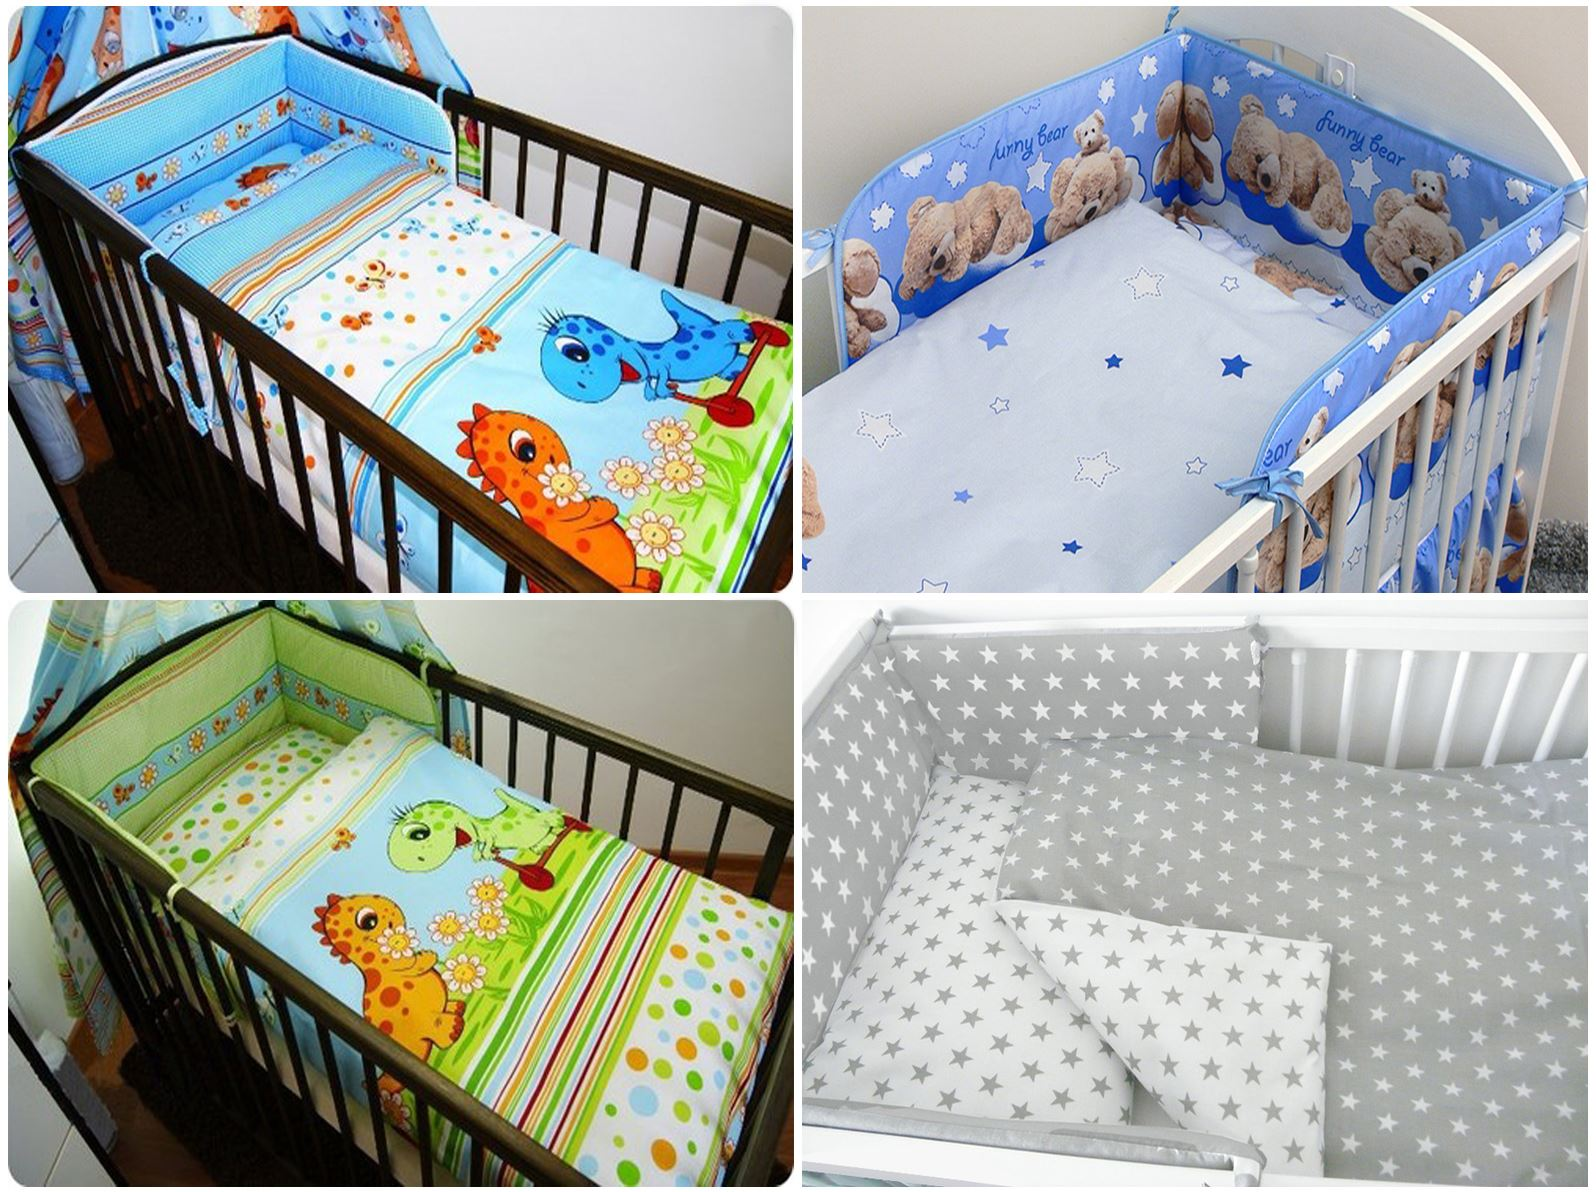 PILLOW-QUILT COVER to fit COT 3 PIECES NURSERY BABY BEDDING SET BUMPER